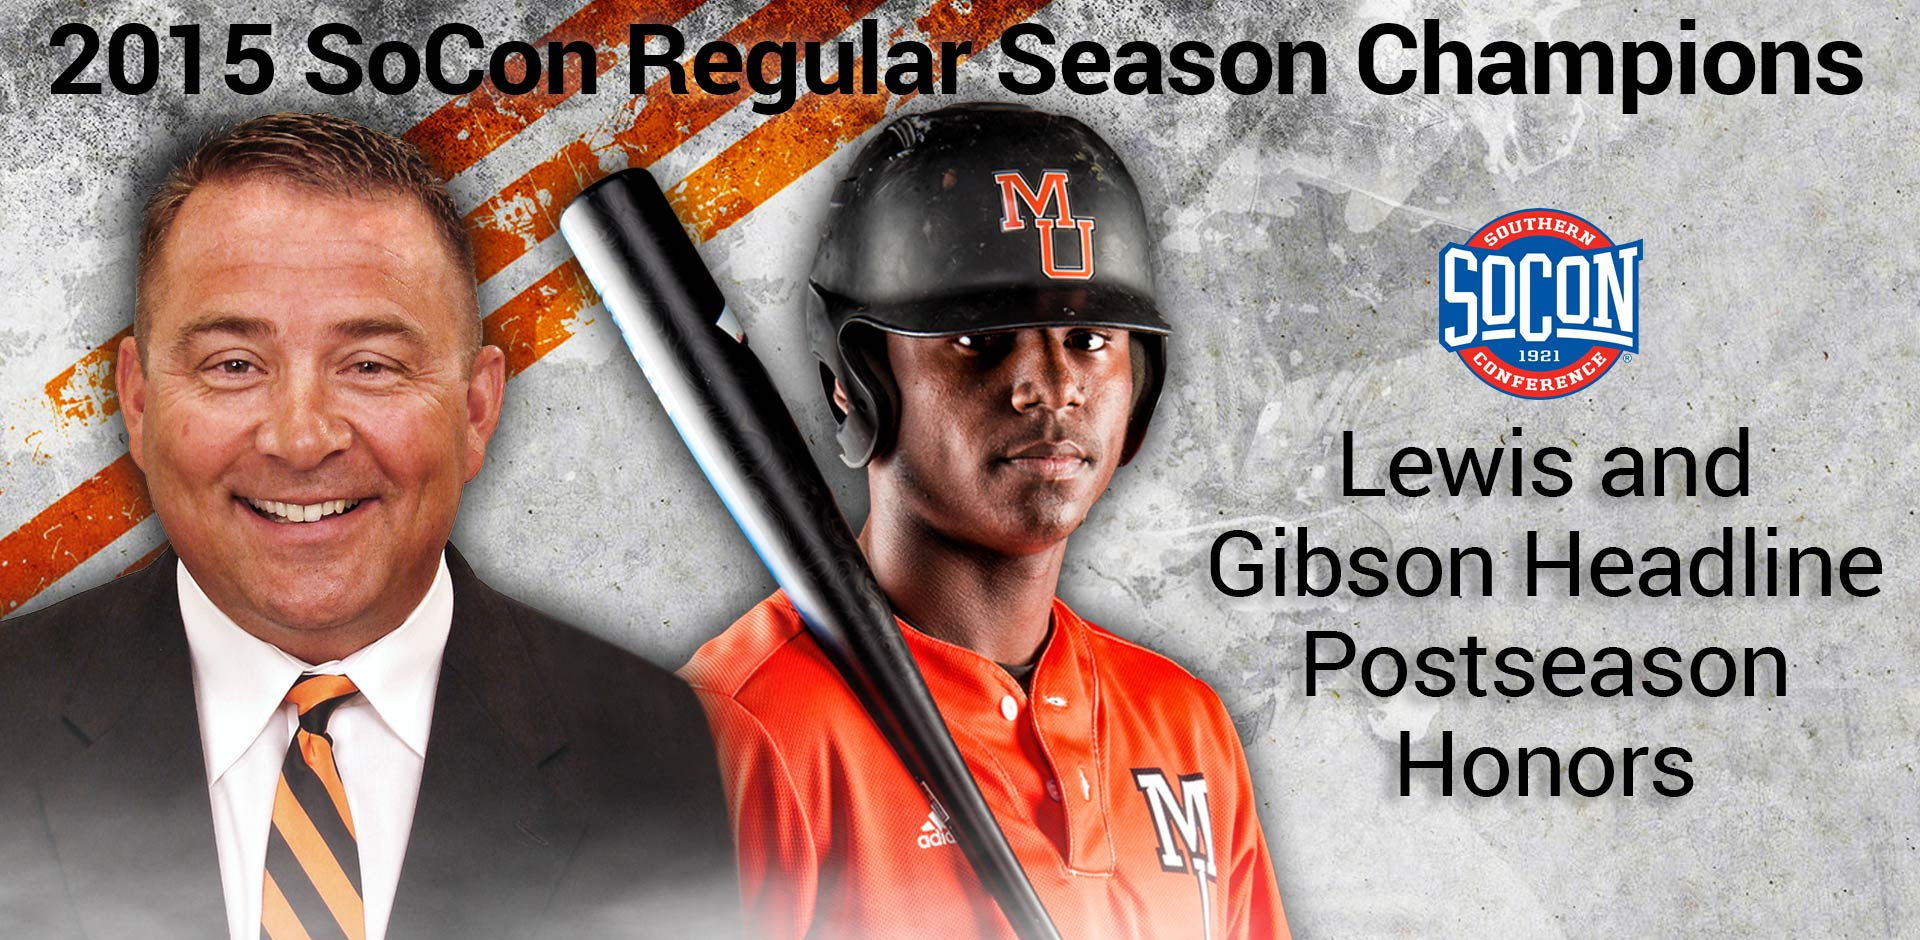 Lewis and Gibson Headline Mercer's Postseason Honors